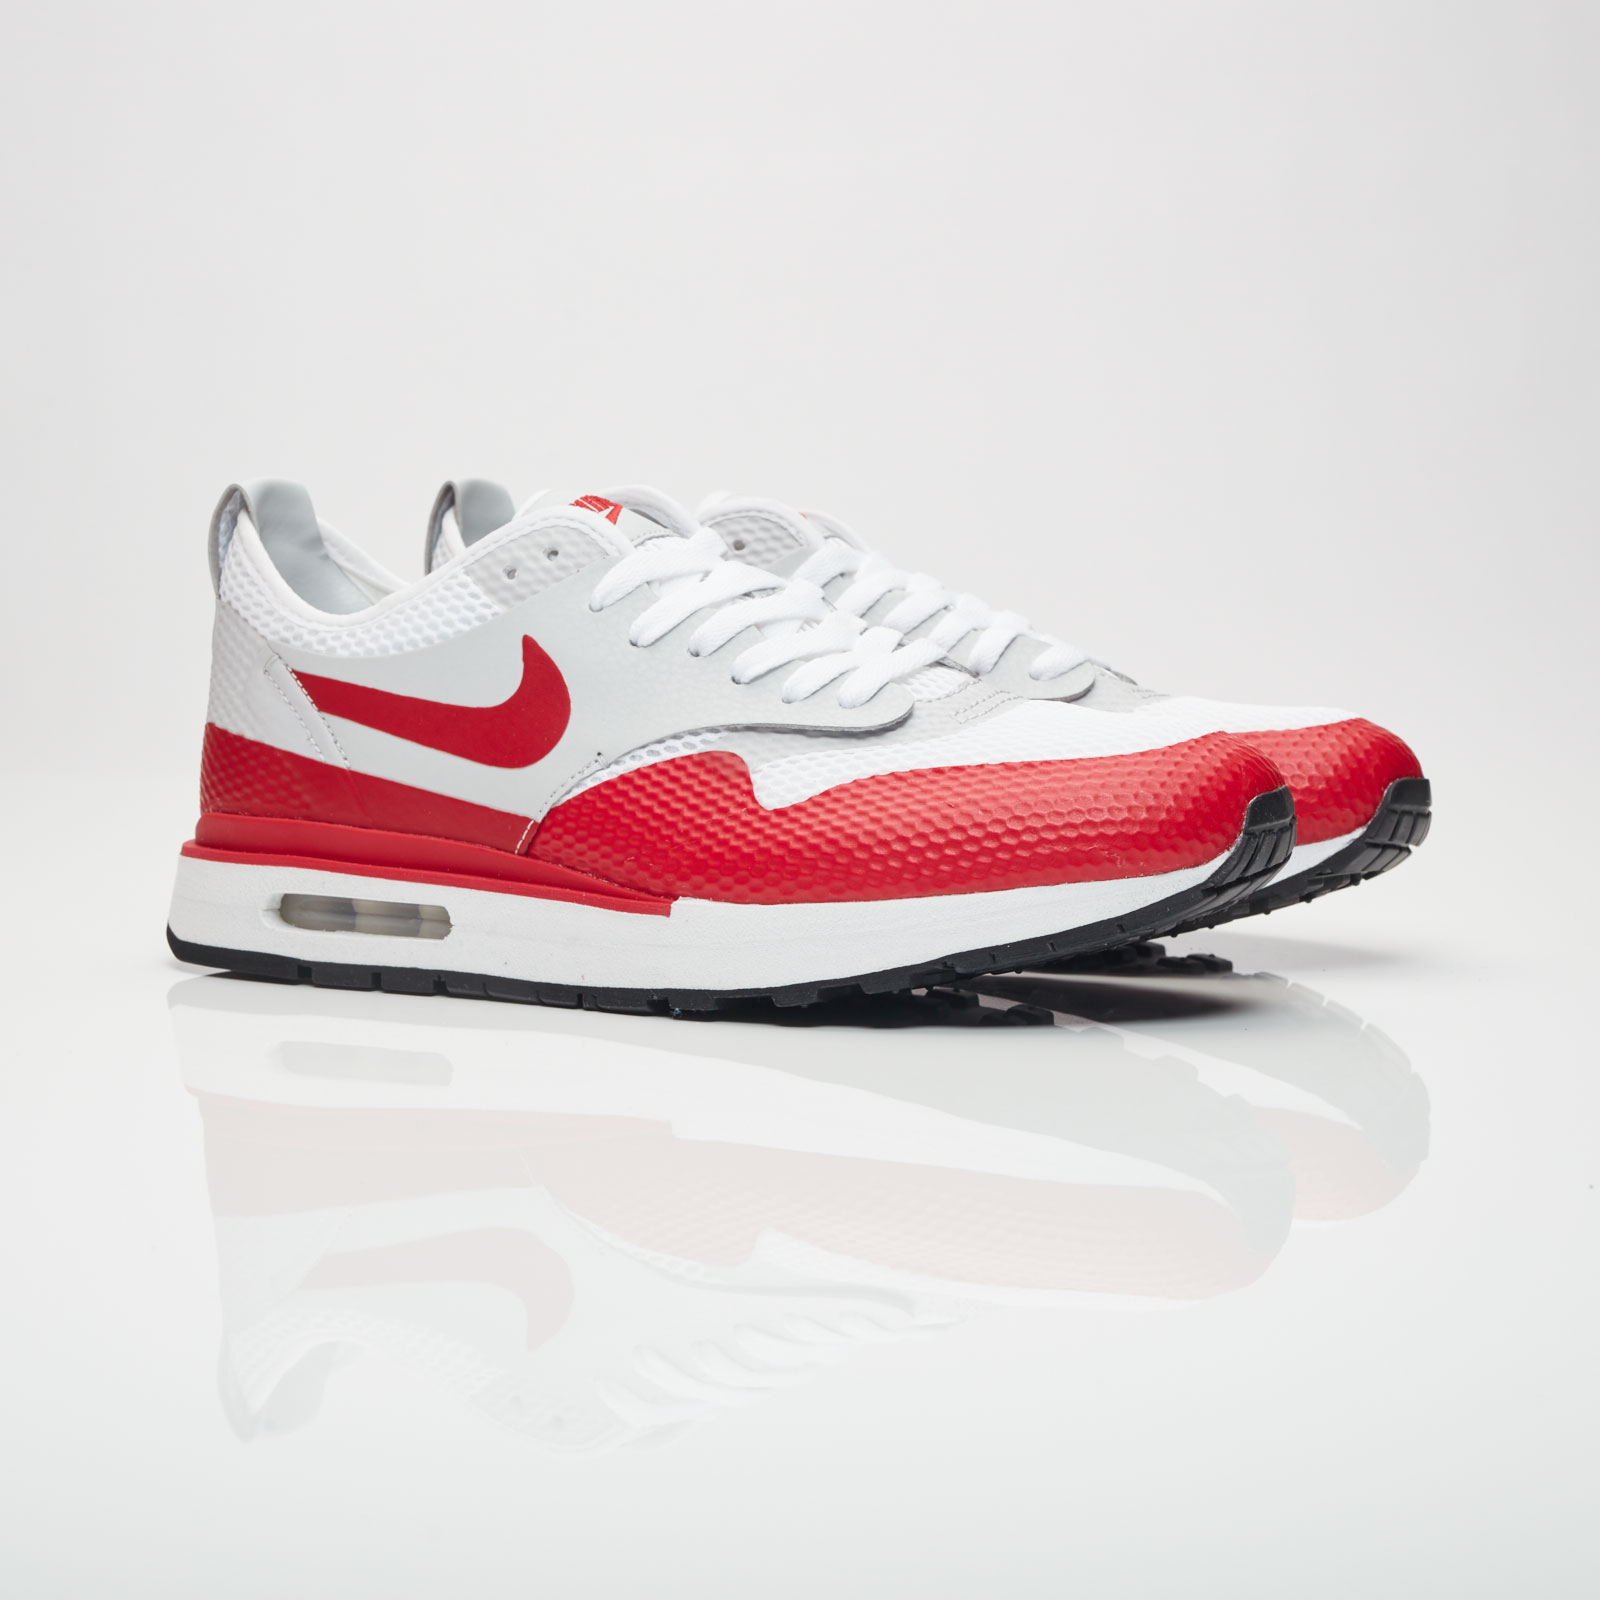 2da9b9167a Nike Air Max 1 Royal SE SP - Aa0869-100 - Sneakersnstuff | sneakers ...